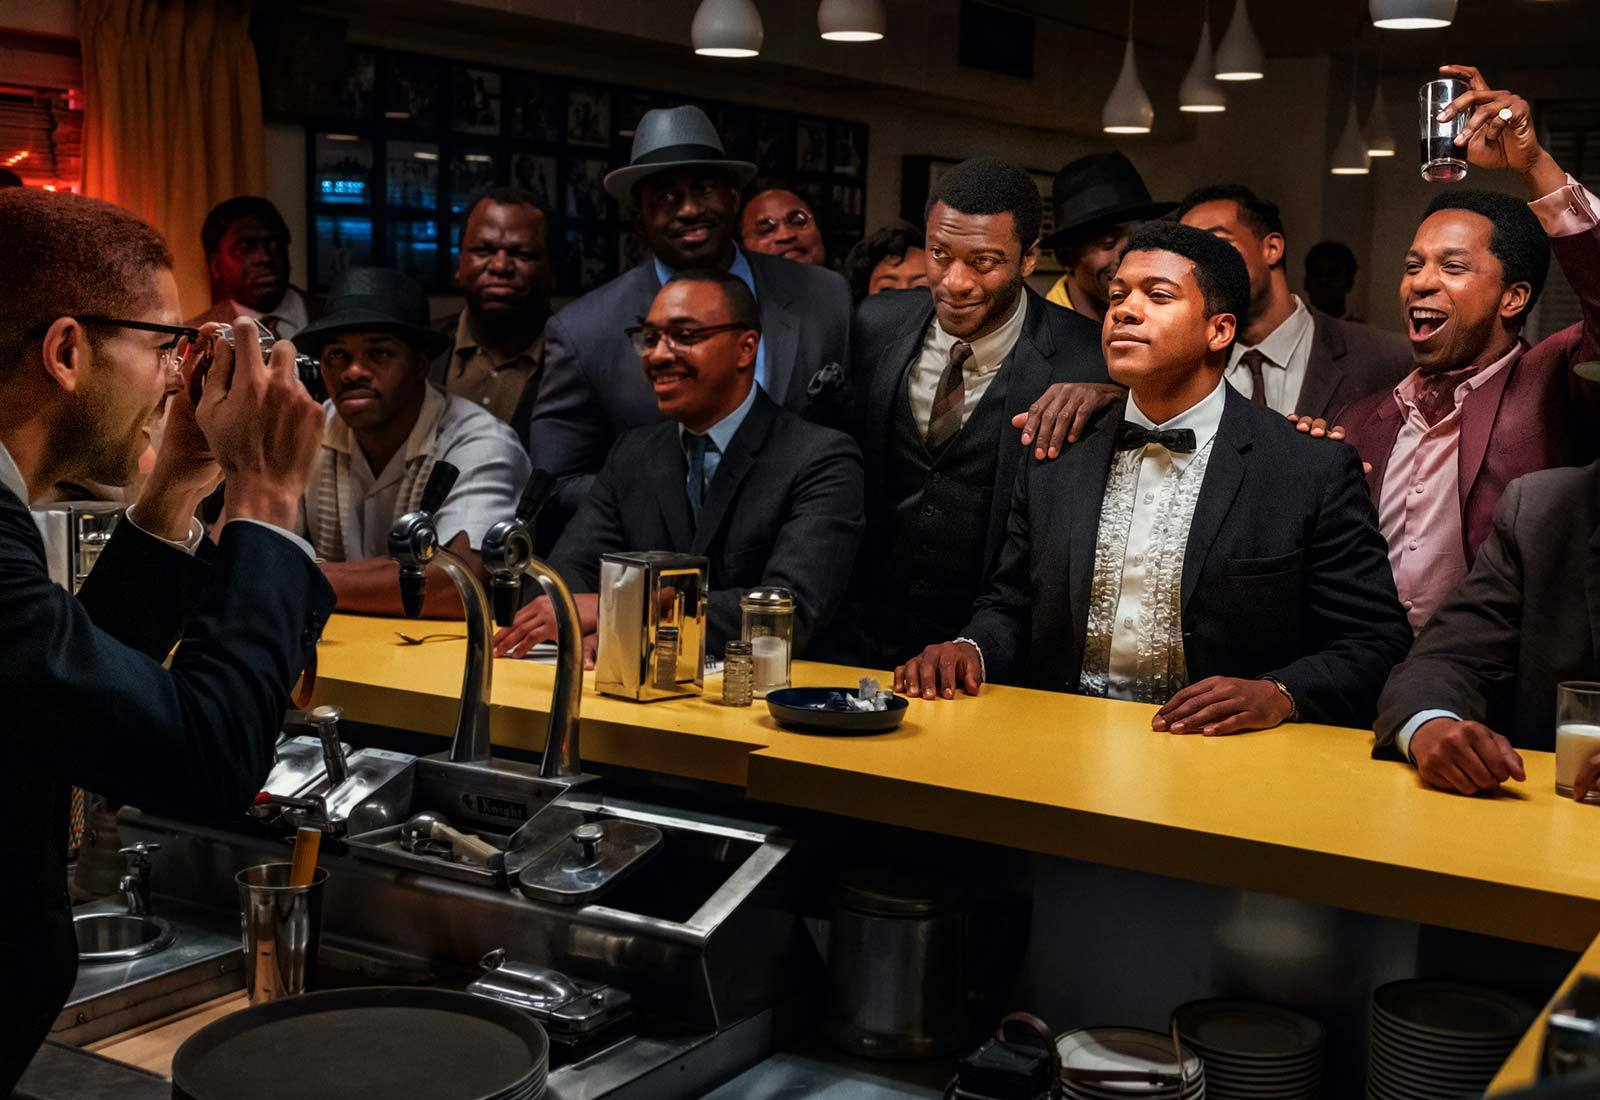 A still from 'One Night In Miami'. Kingsley Ben-Adir as Malcolm X on the bartender side of a bar taking a photograph of a group of Black American men. Right-center is Aldis Hodge, Eli Goree, and Leslie Odom Jr as Jim Brown, Cassius Clay, and Sam Cooke